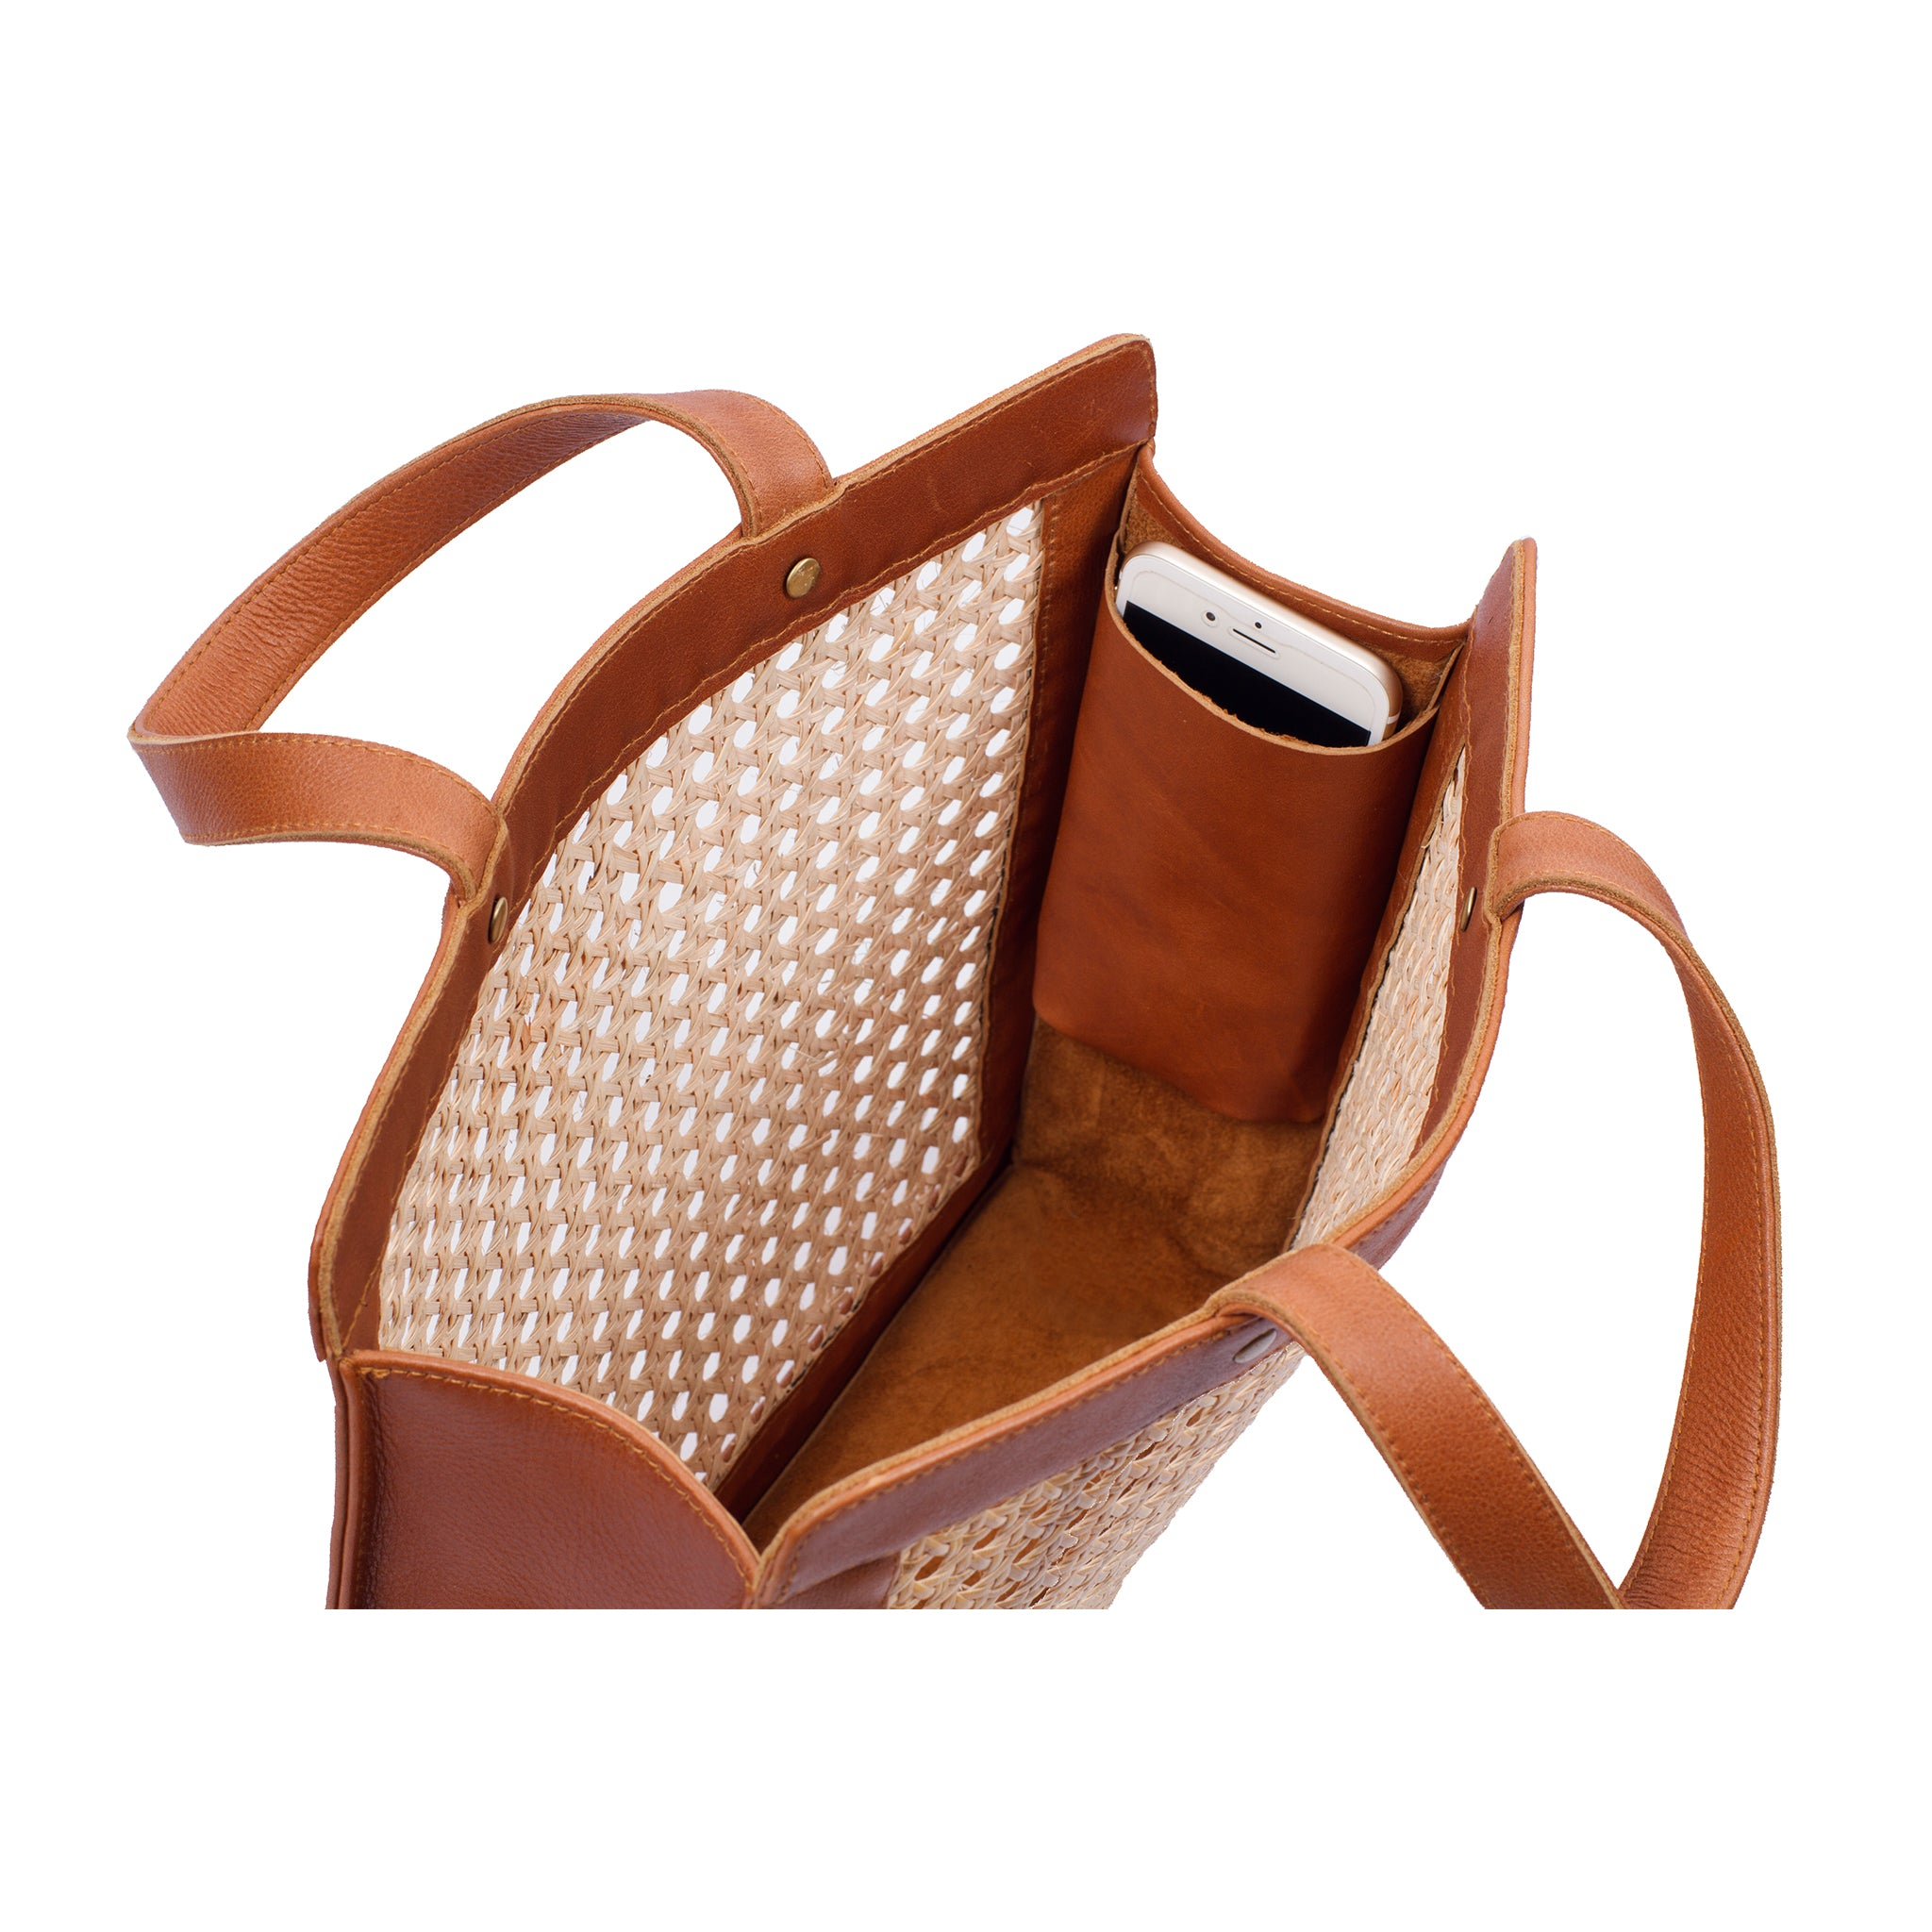 Interior view Rattan and Leather shoulder bag